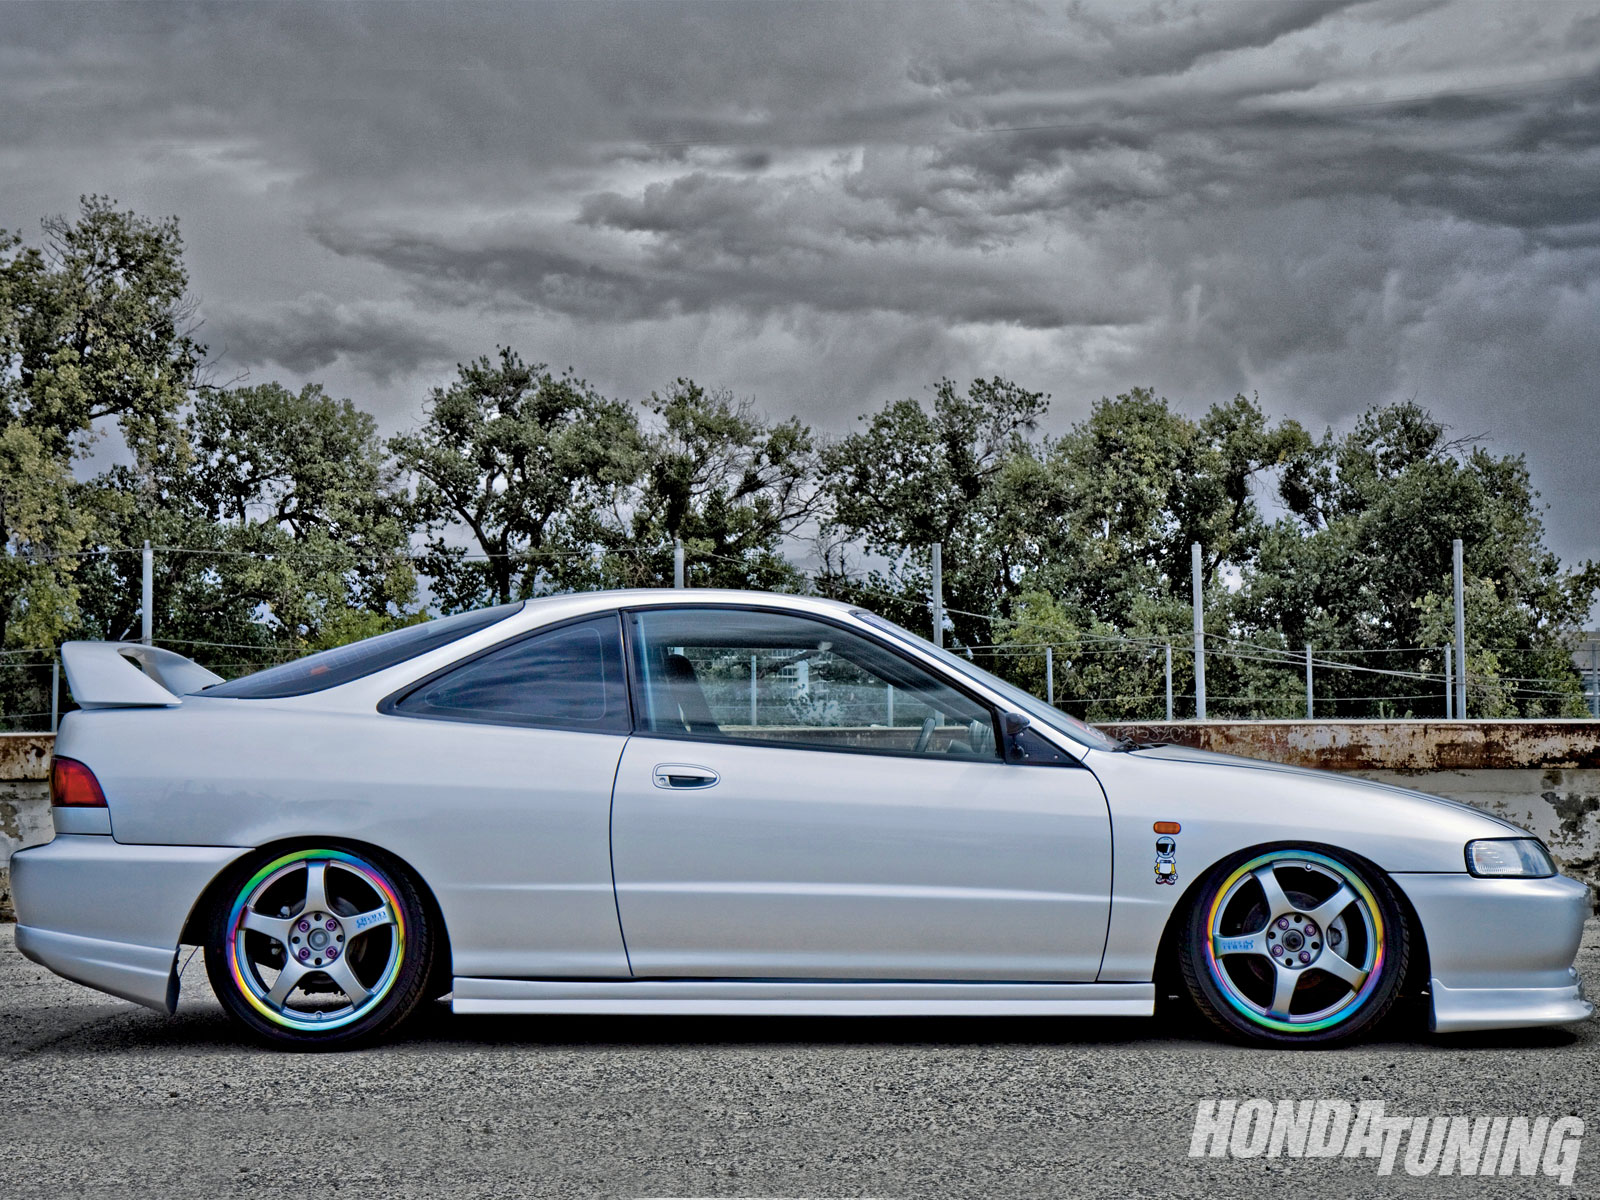 Topworldauto Photos Of Acura Integra Ls Photo Galleries